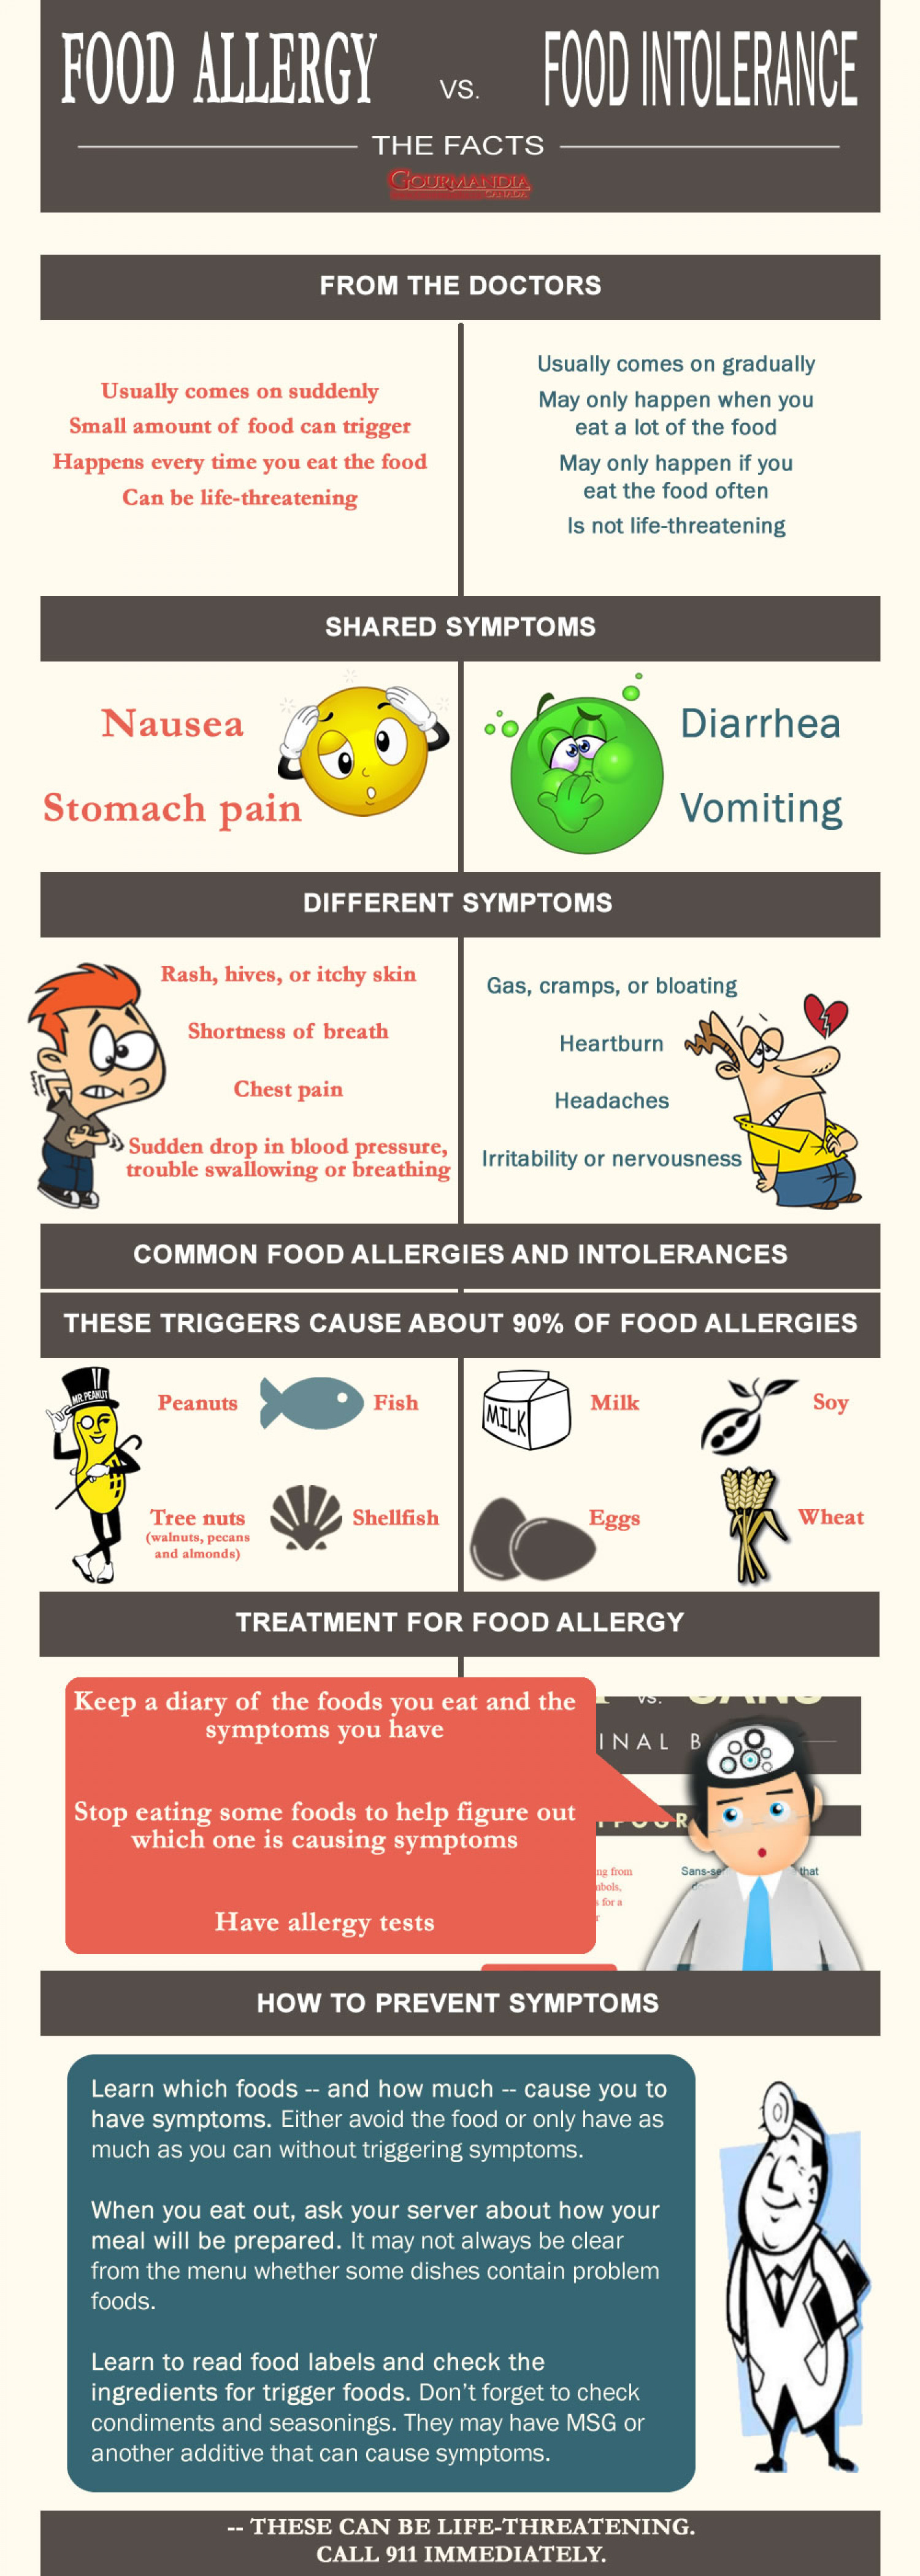 Food Allergy vs Food Intolerance Infographic